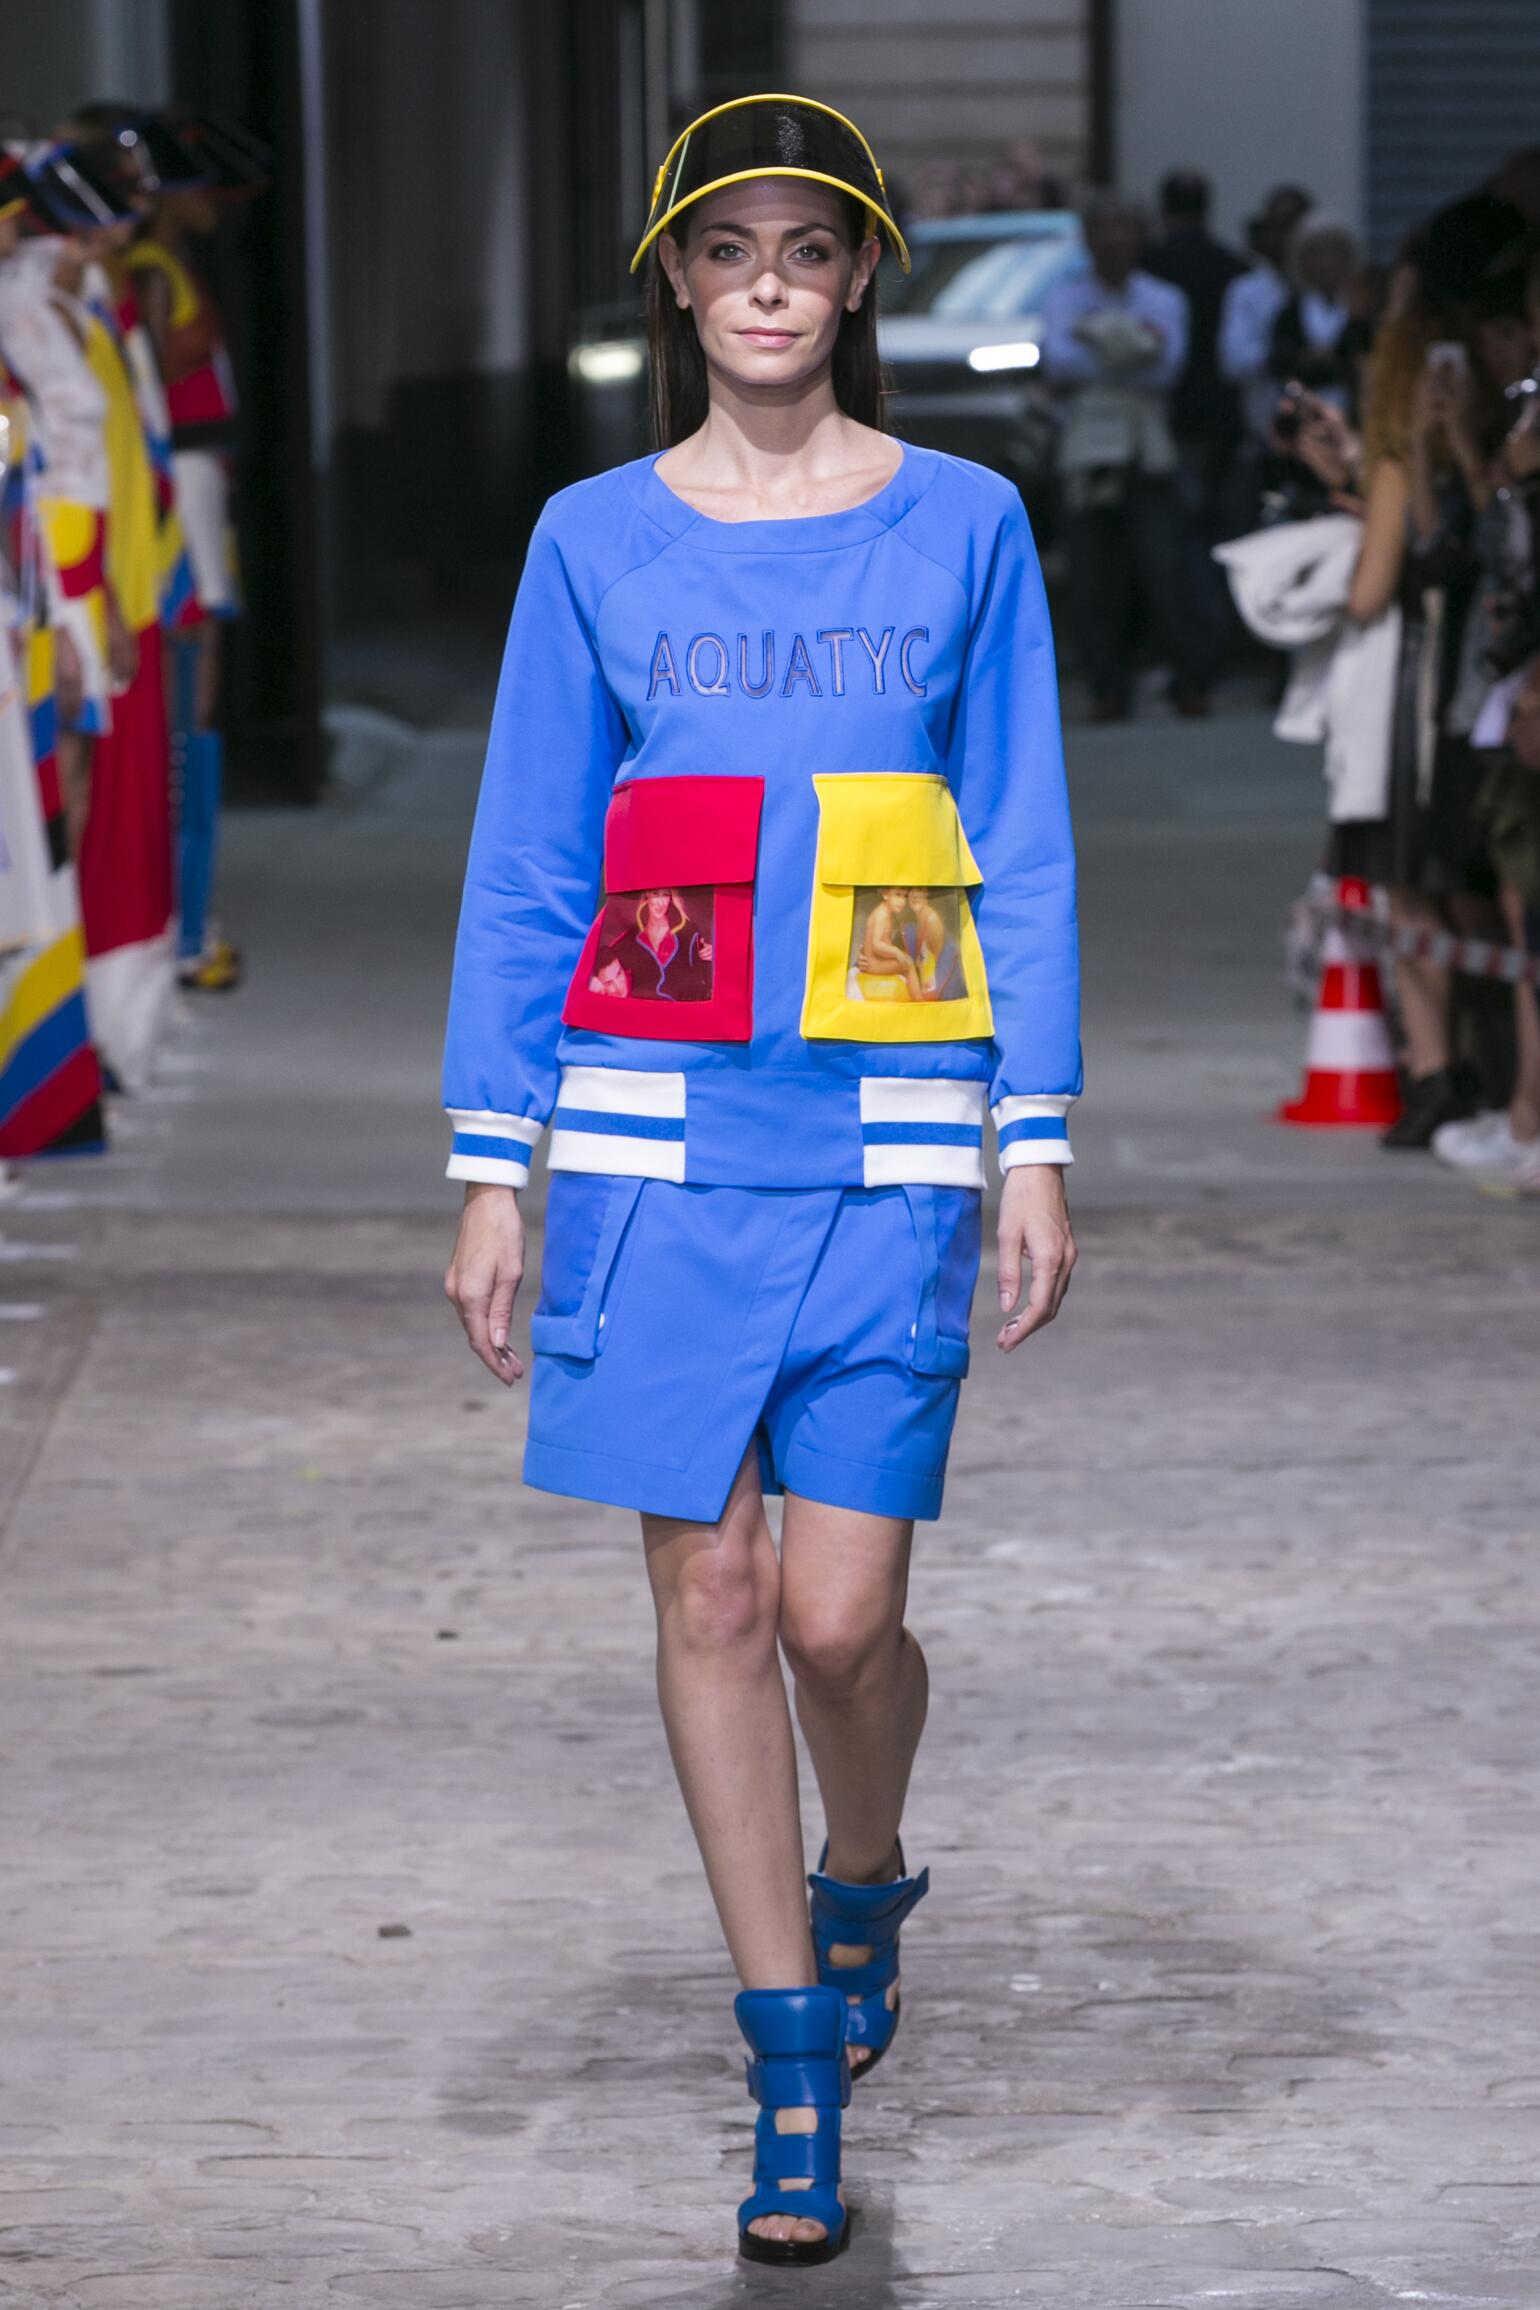 Fashion Model Jean-Charles de Castelbajac Catwalk